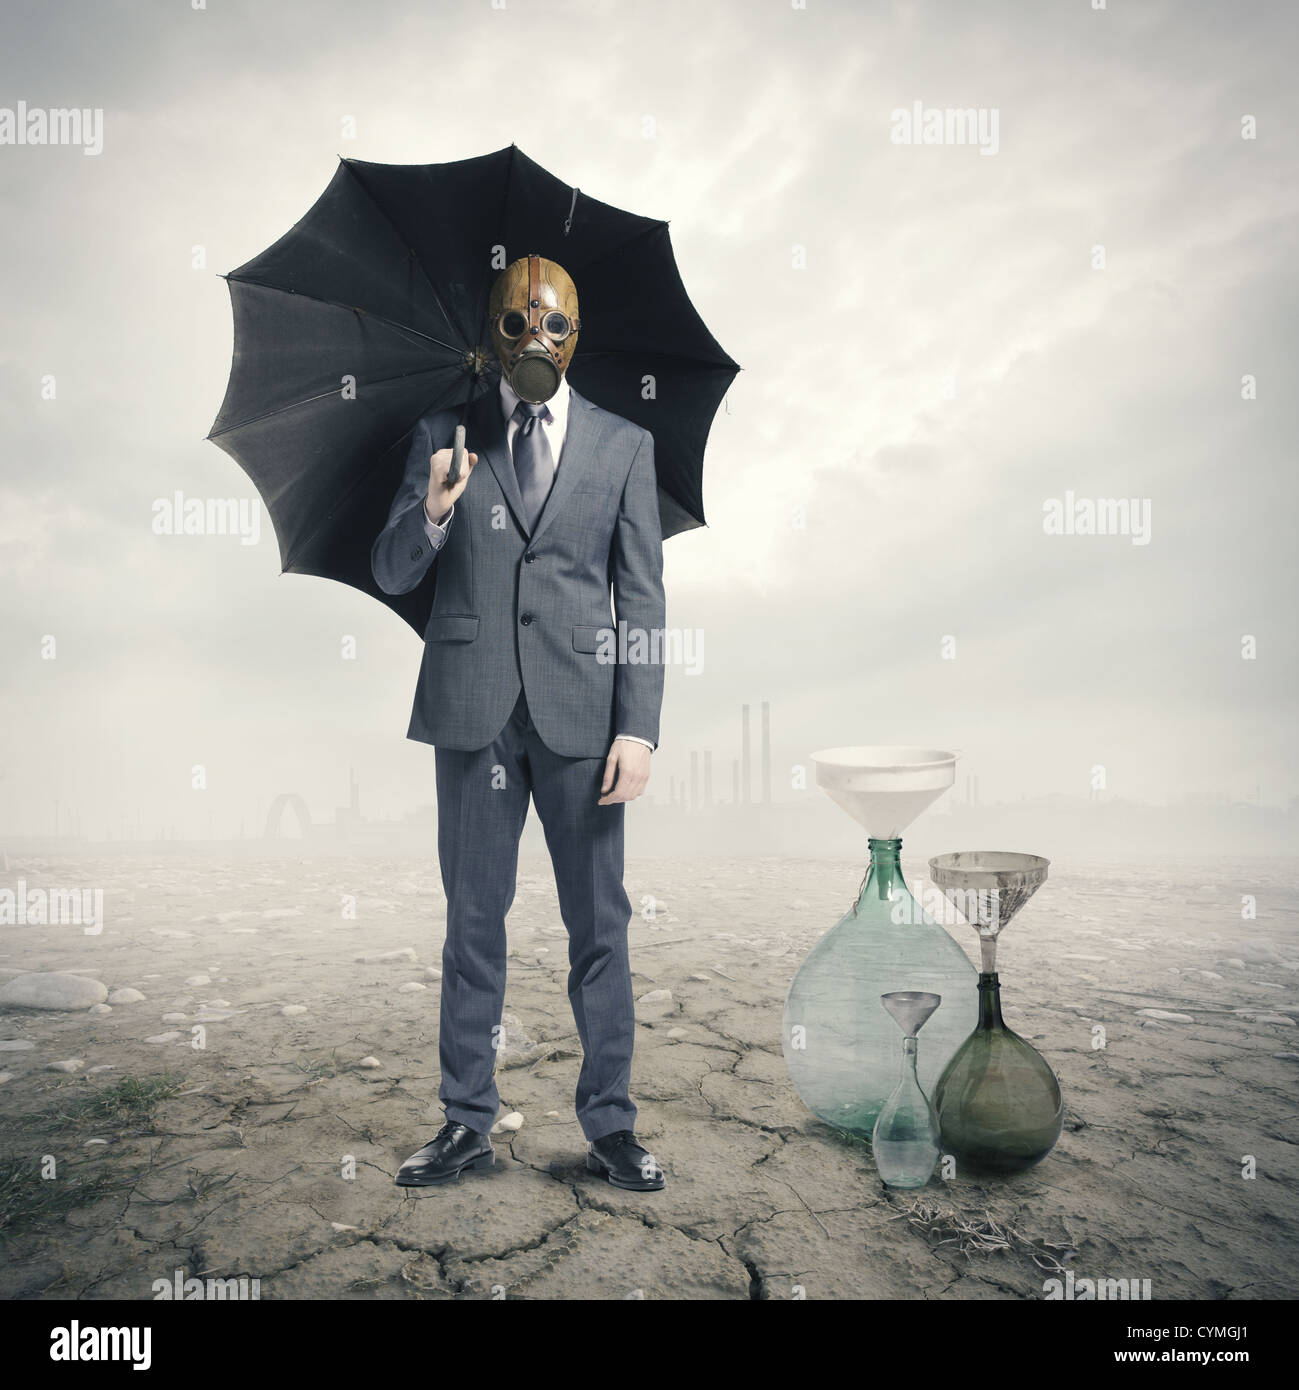 Global Warming:Businessman waiting for the rain - Stock Image